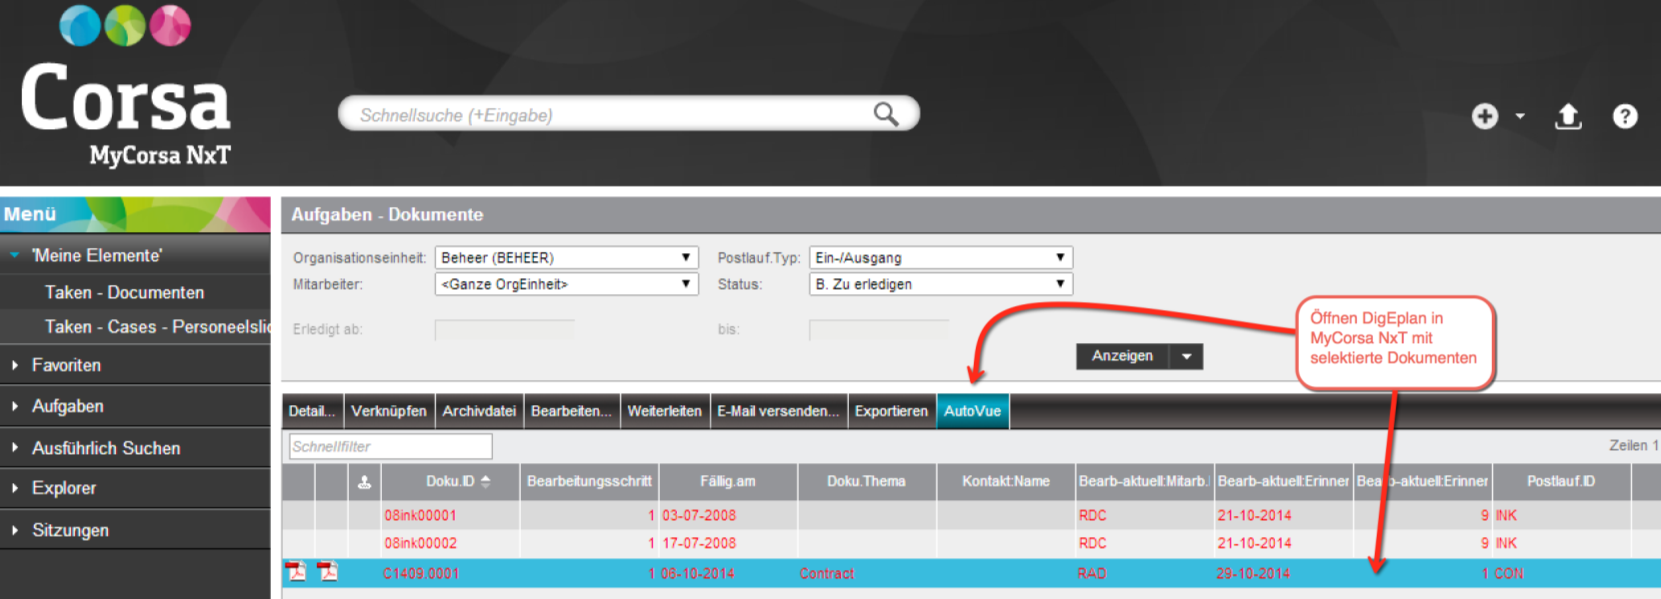 Vollintegration in